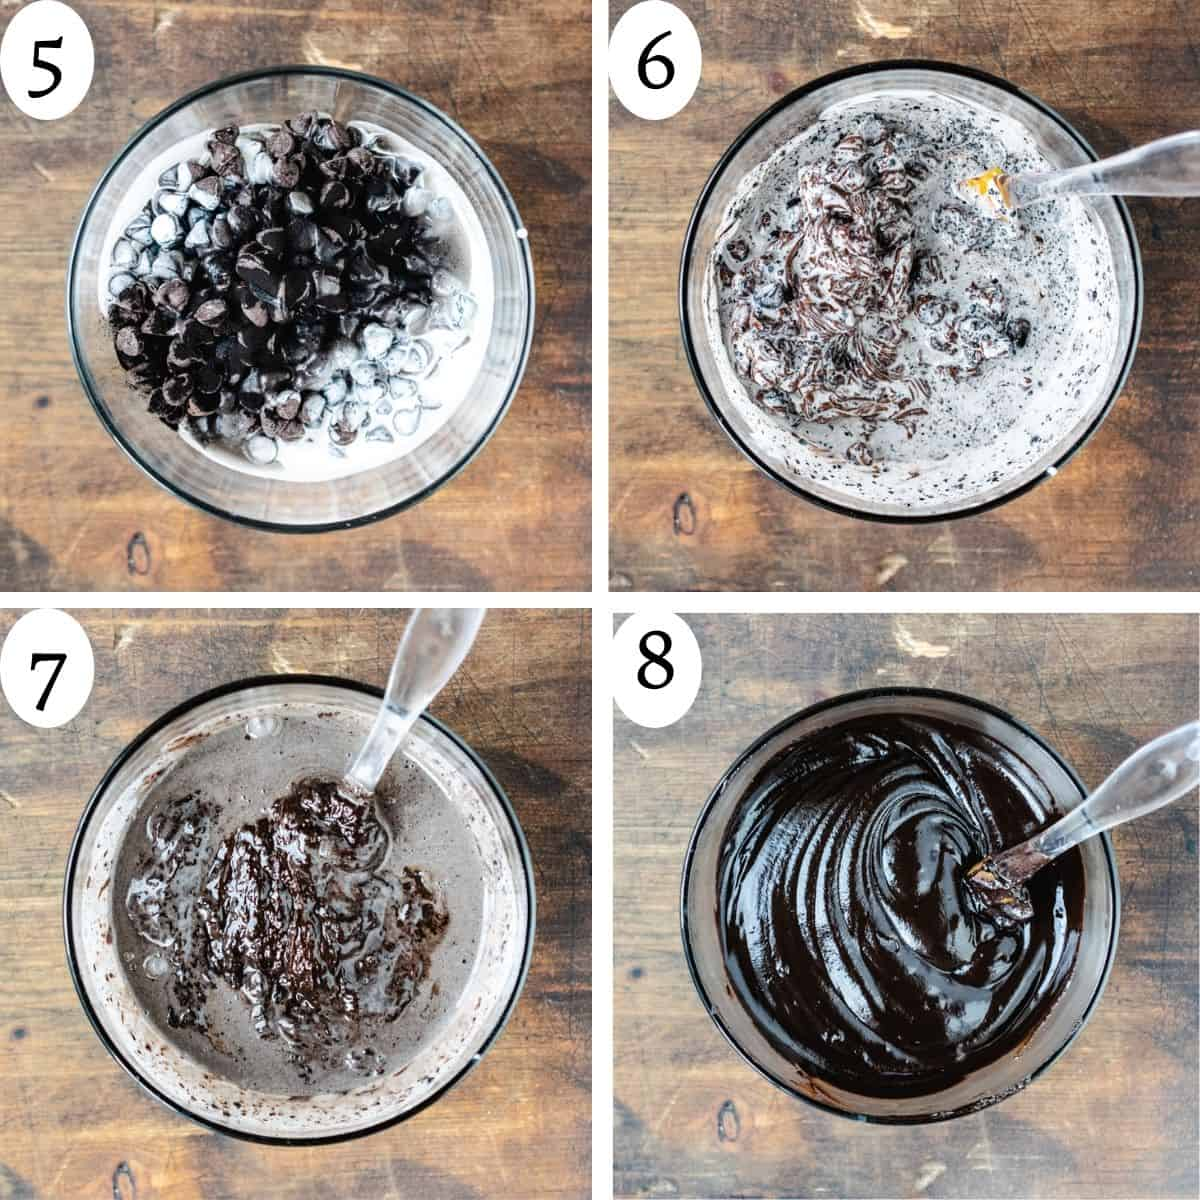 Four numbered images in a collage showing how to make chocolate ganache.